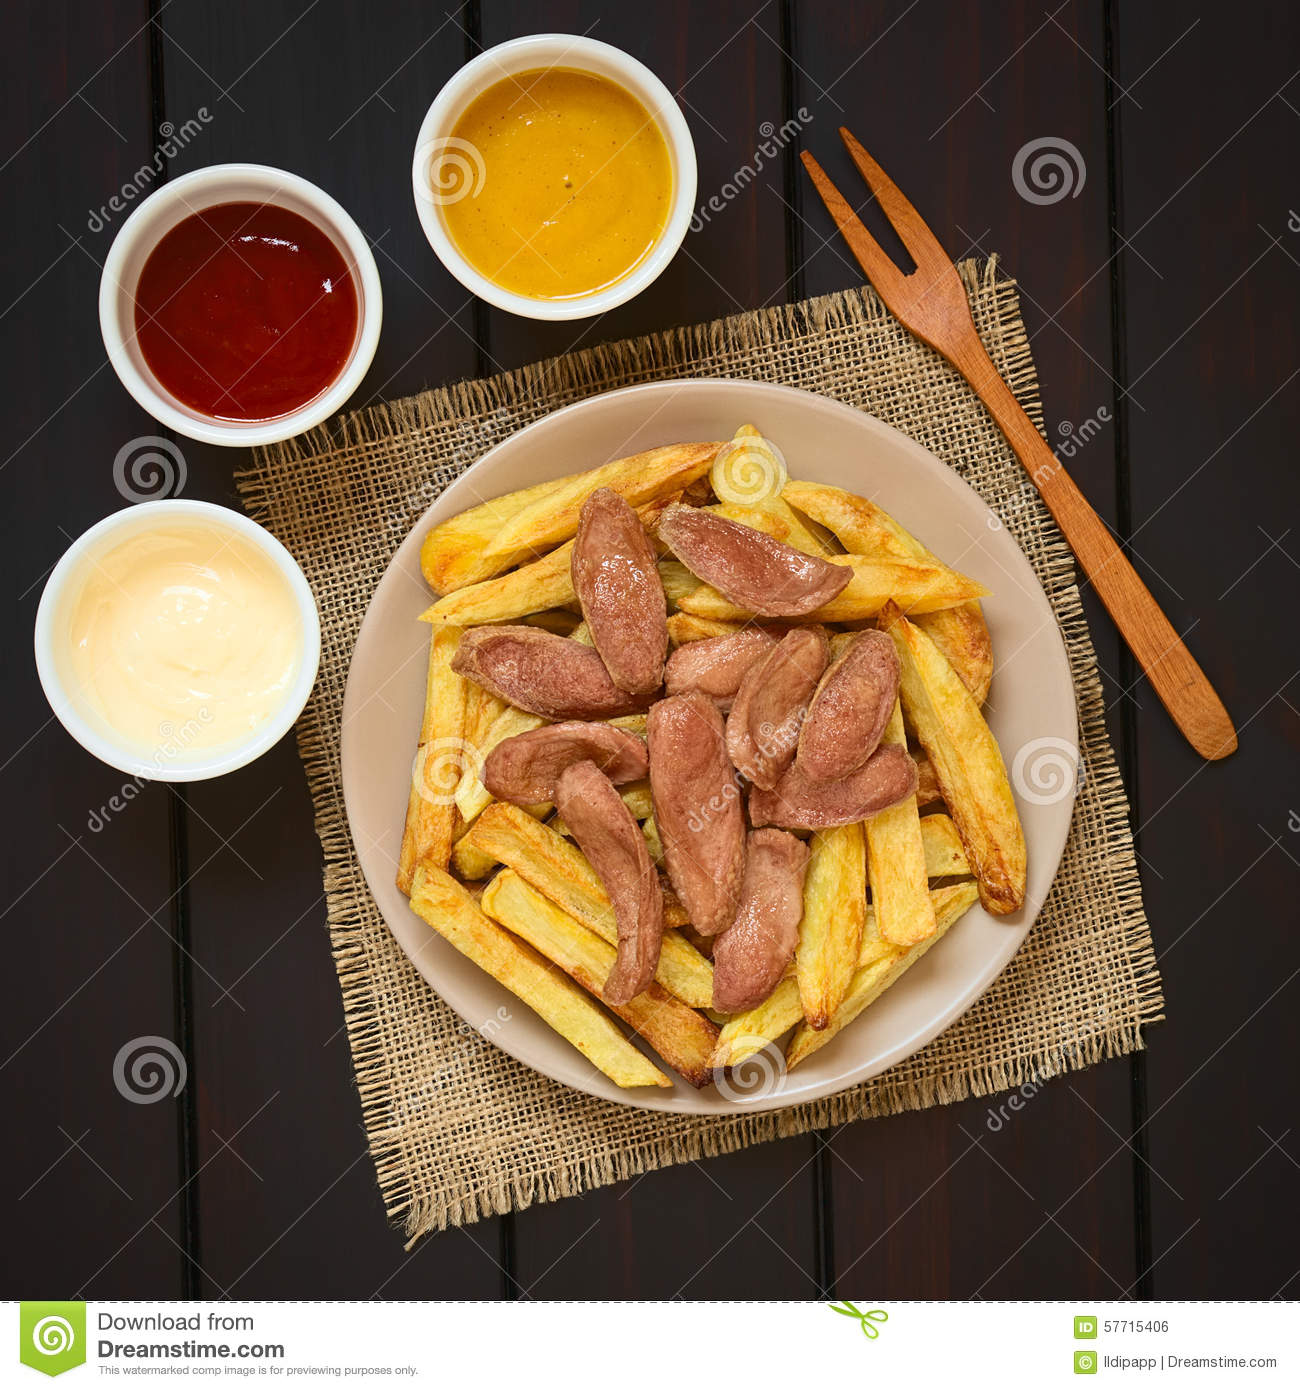 Salchipapas south american fast food stock photo image for Authentic american cuisine